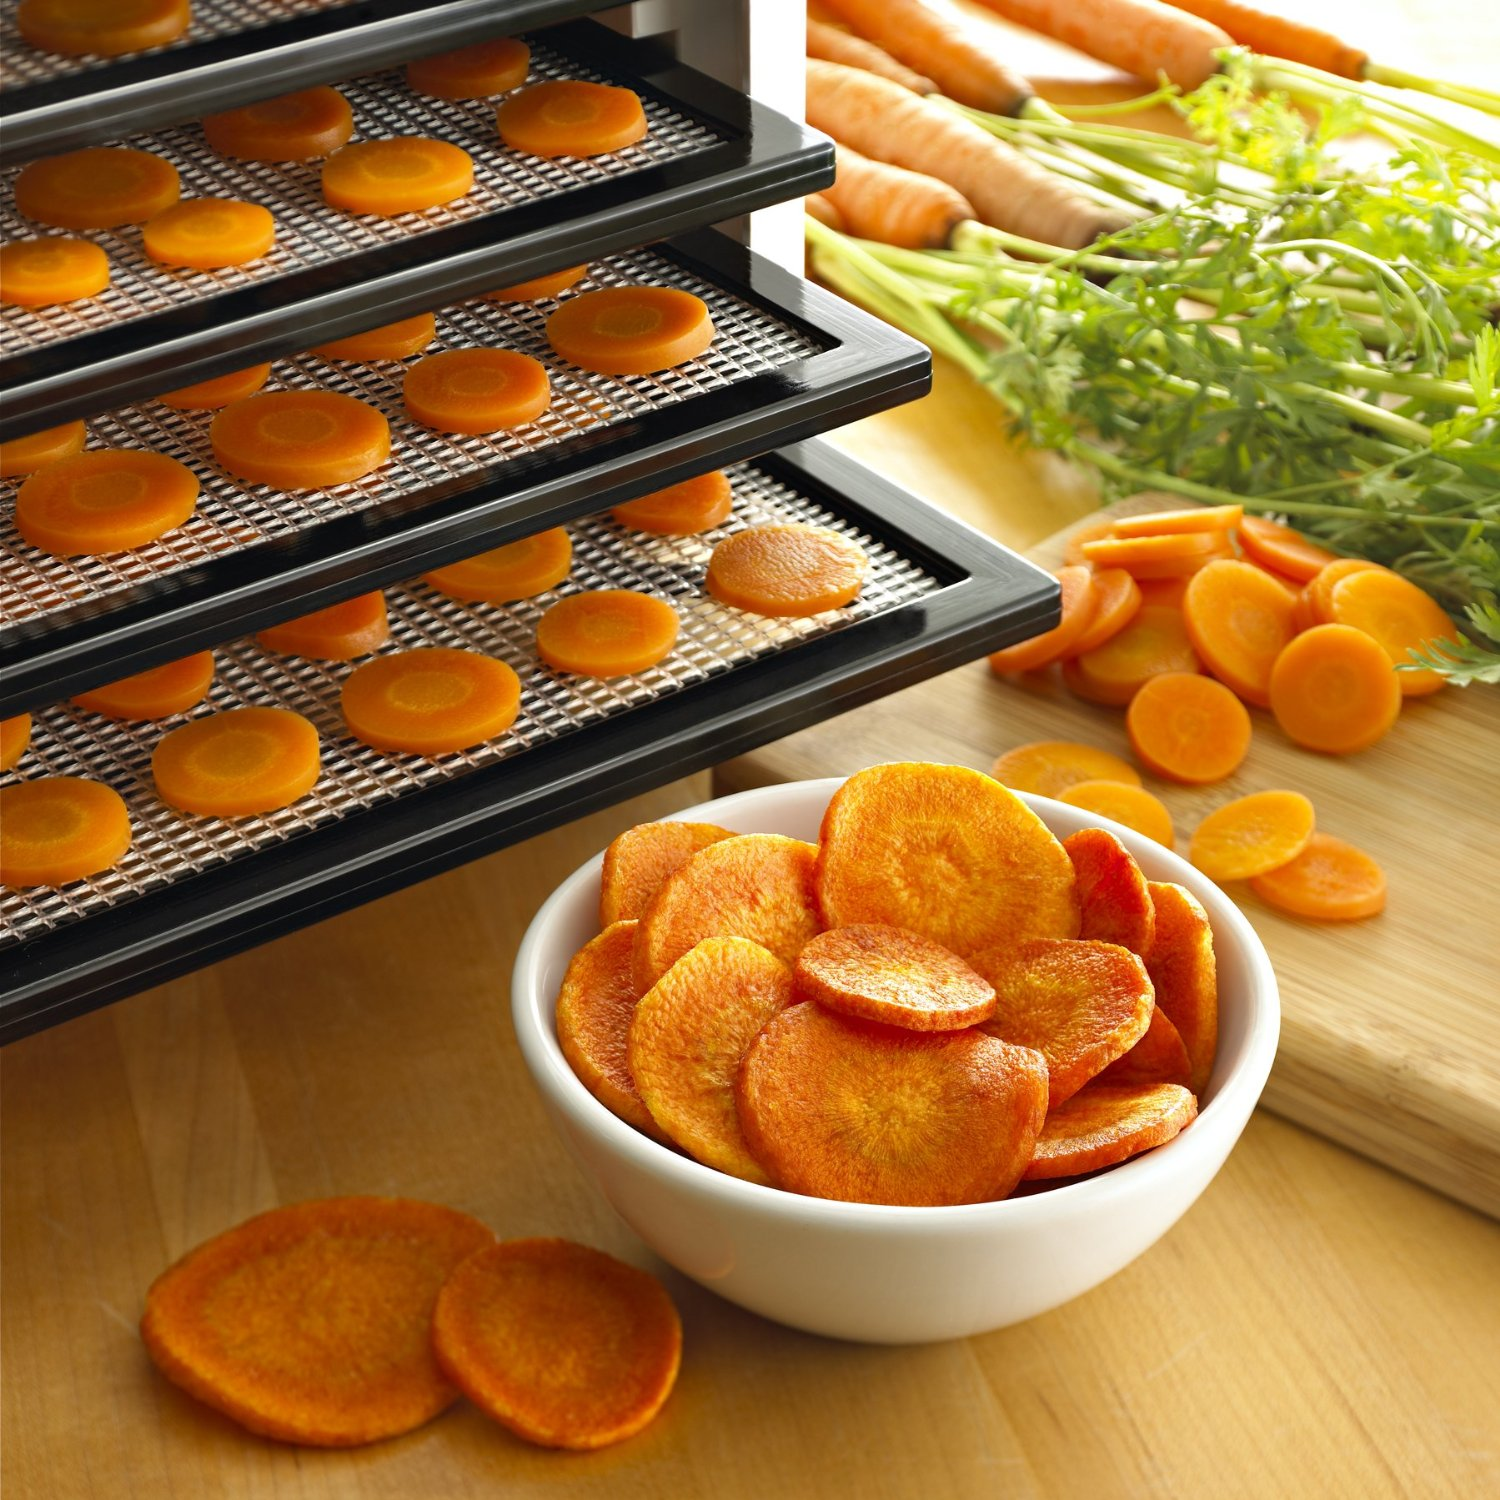 5 Best Food Dehydrator Reviews for 2016